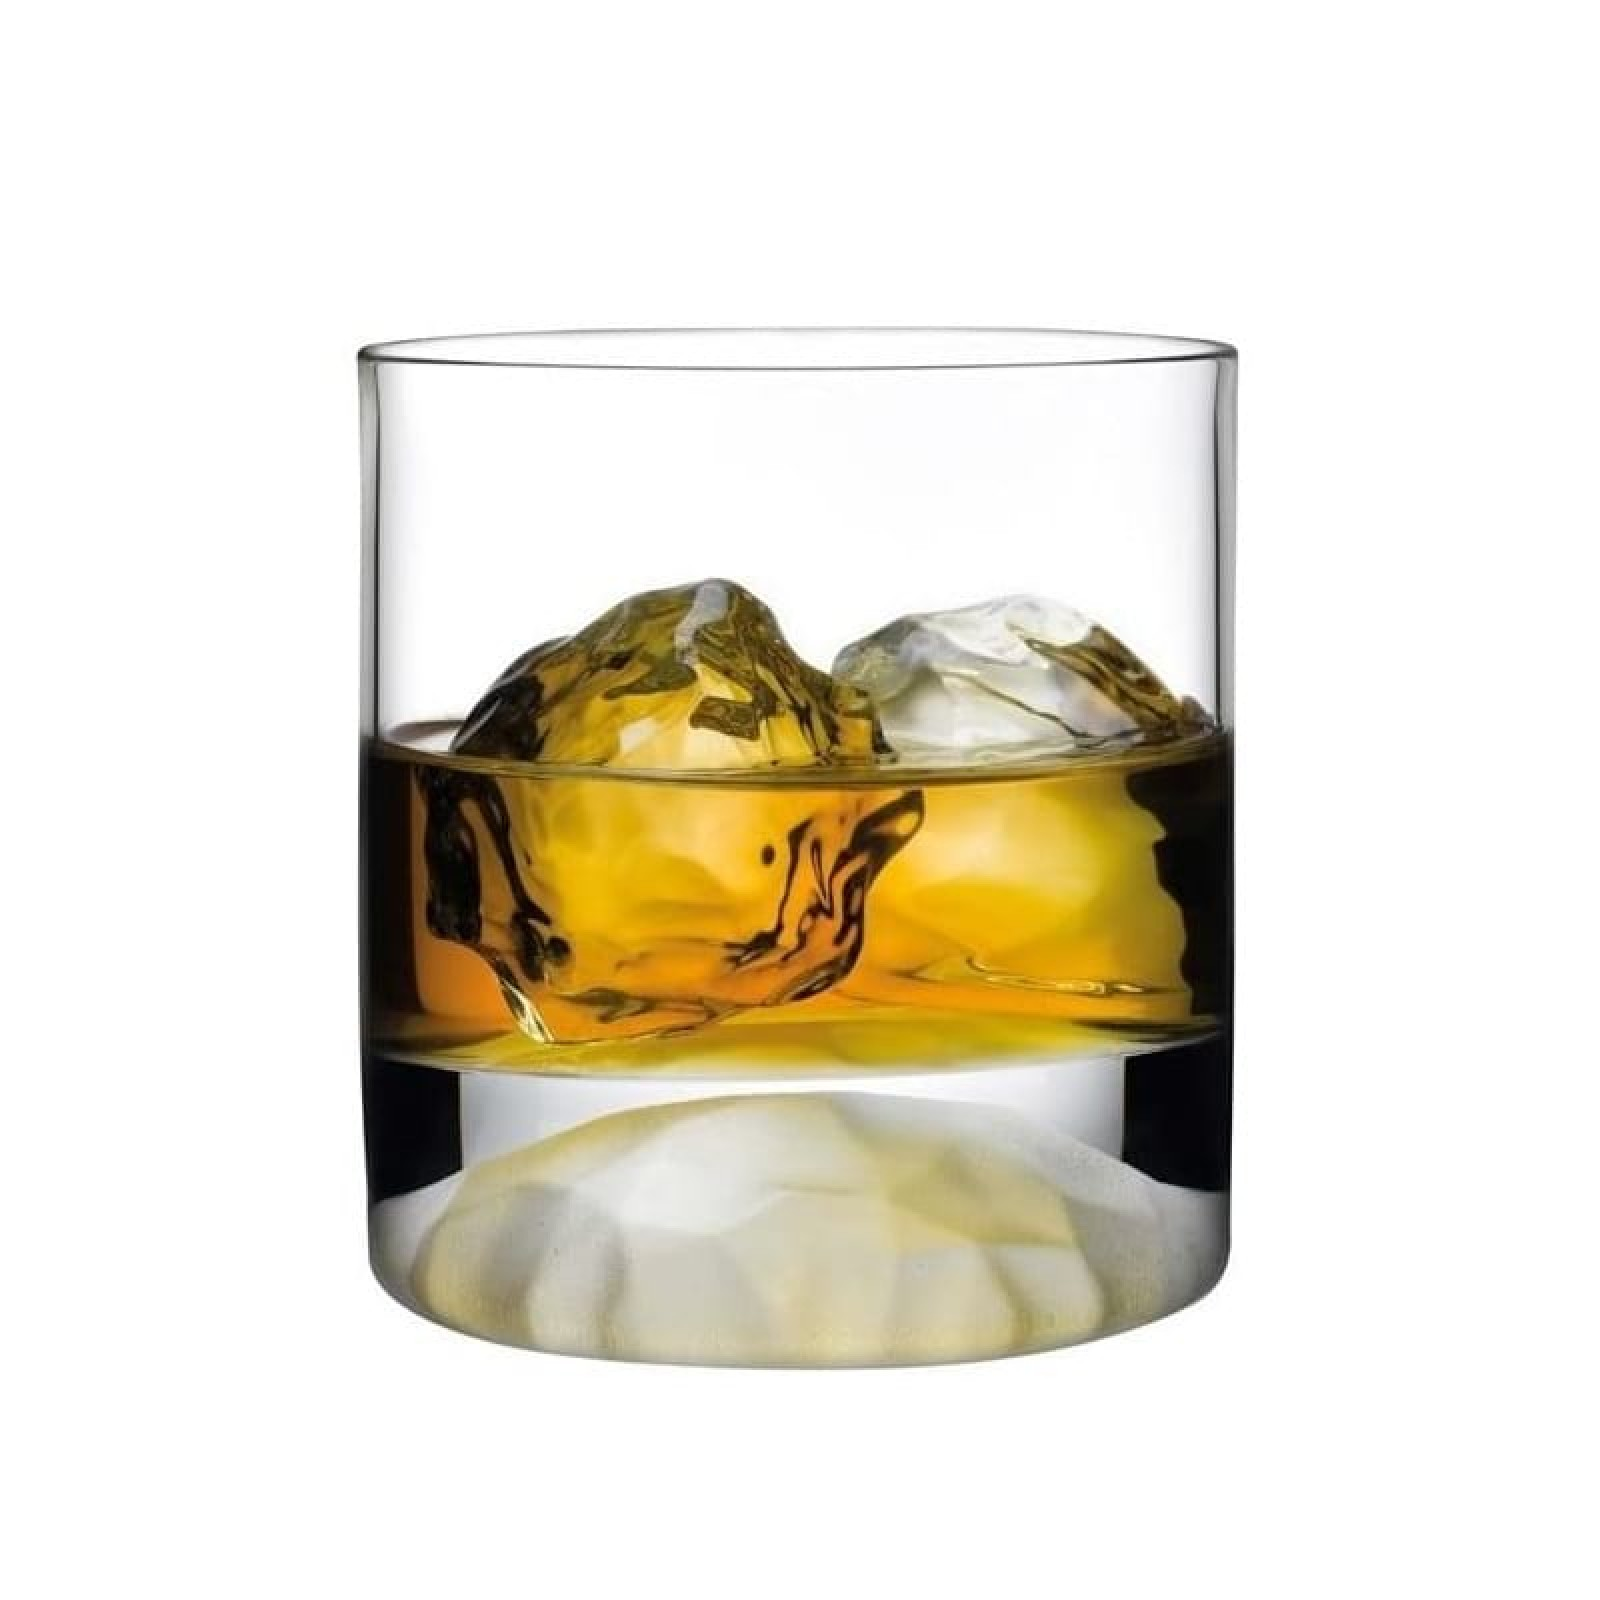 Club Ice Whisky Glasses (Set of 4) - Nude Glass